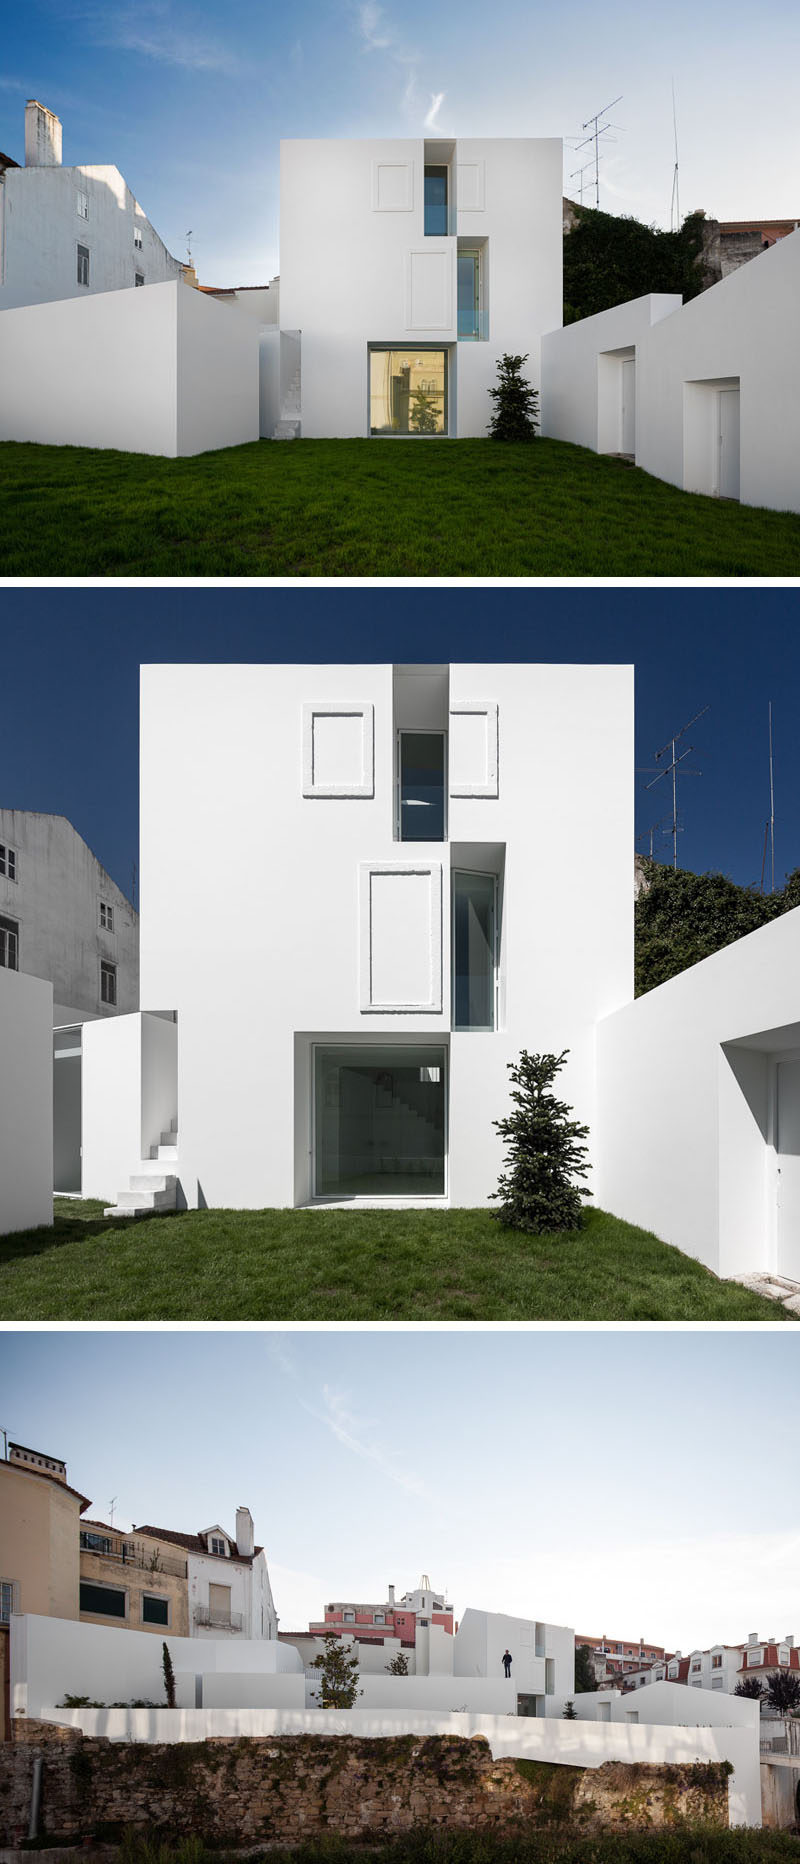 House Exterior Colors - 11 Modern White Houses From Around The World // The bright white exterior of this angular home gives it a clean look and sets it apart from the other houses around it.